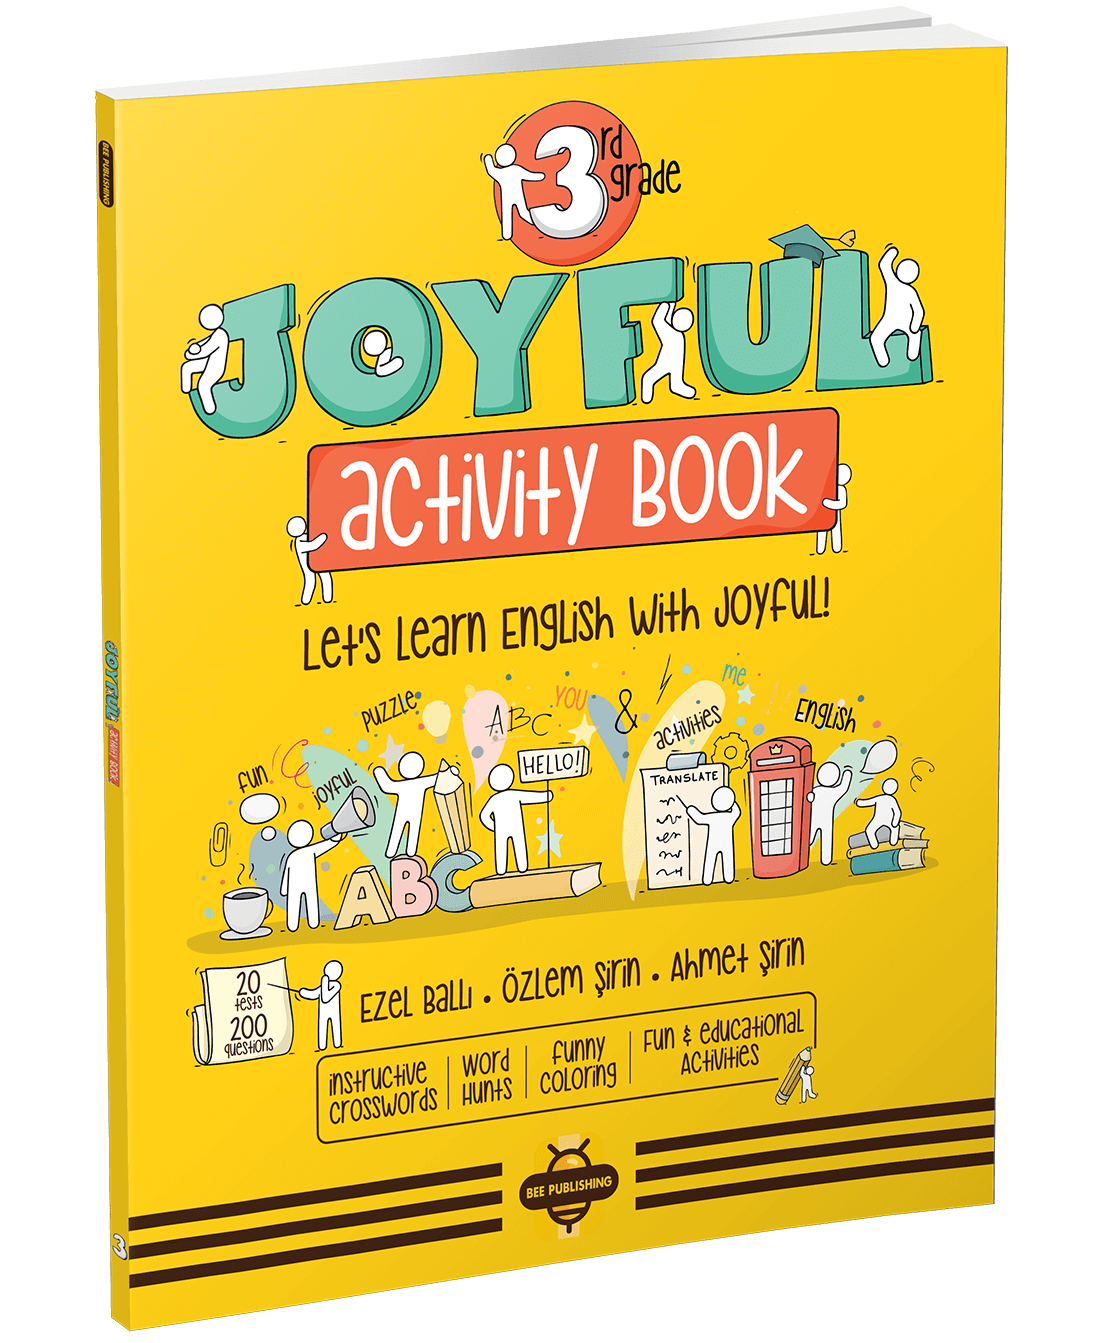 Joyful Activity Book 3. Sınıf